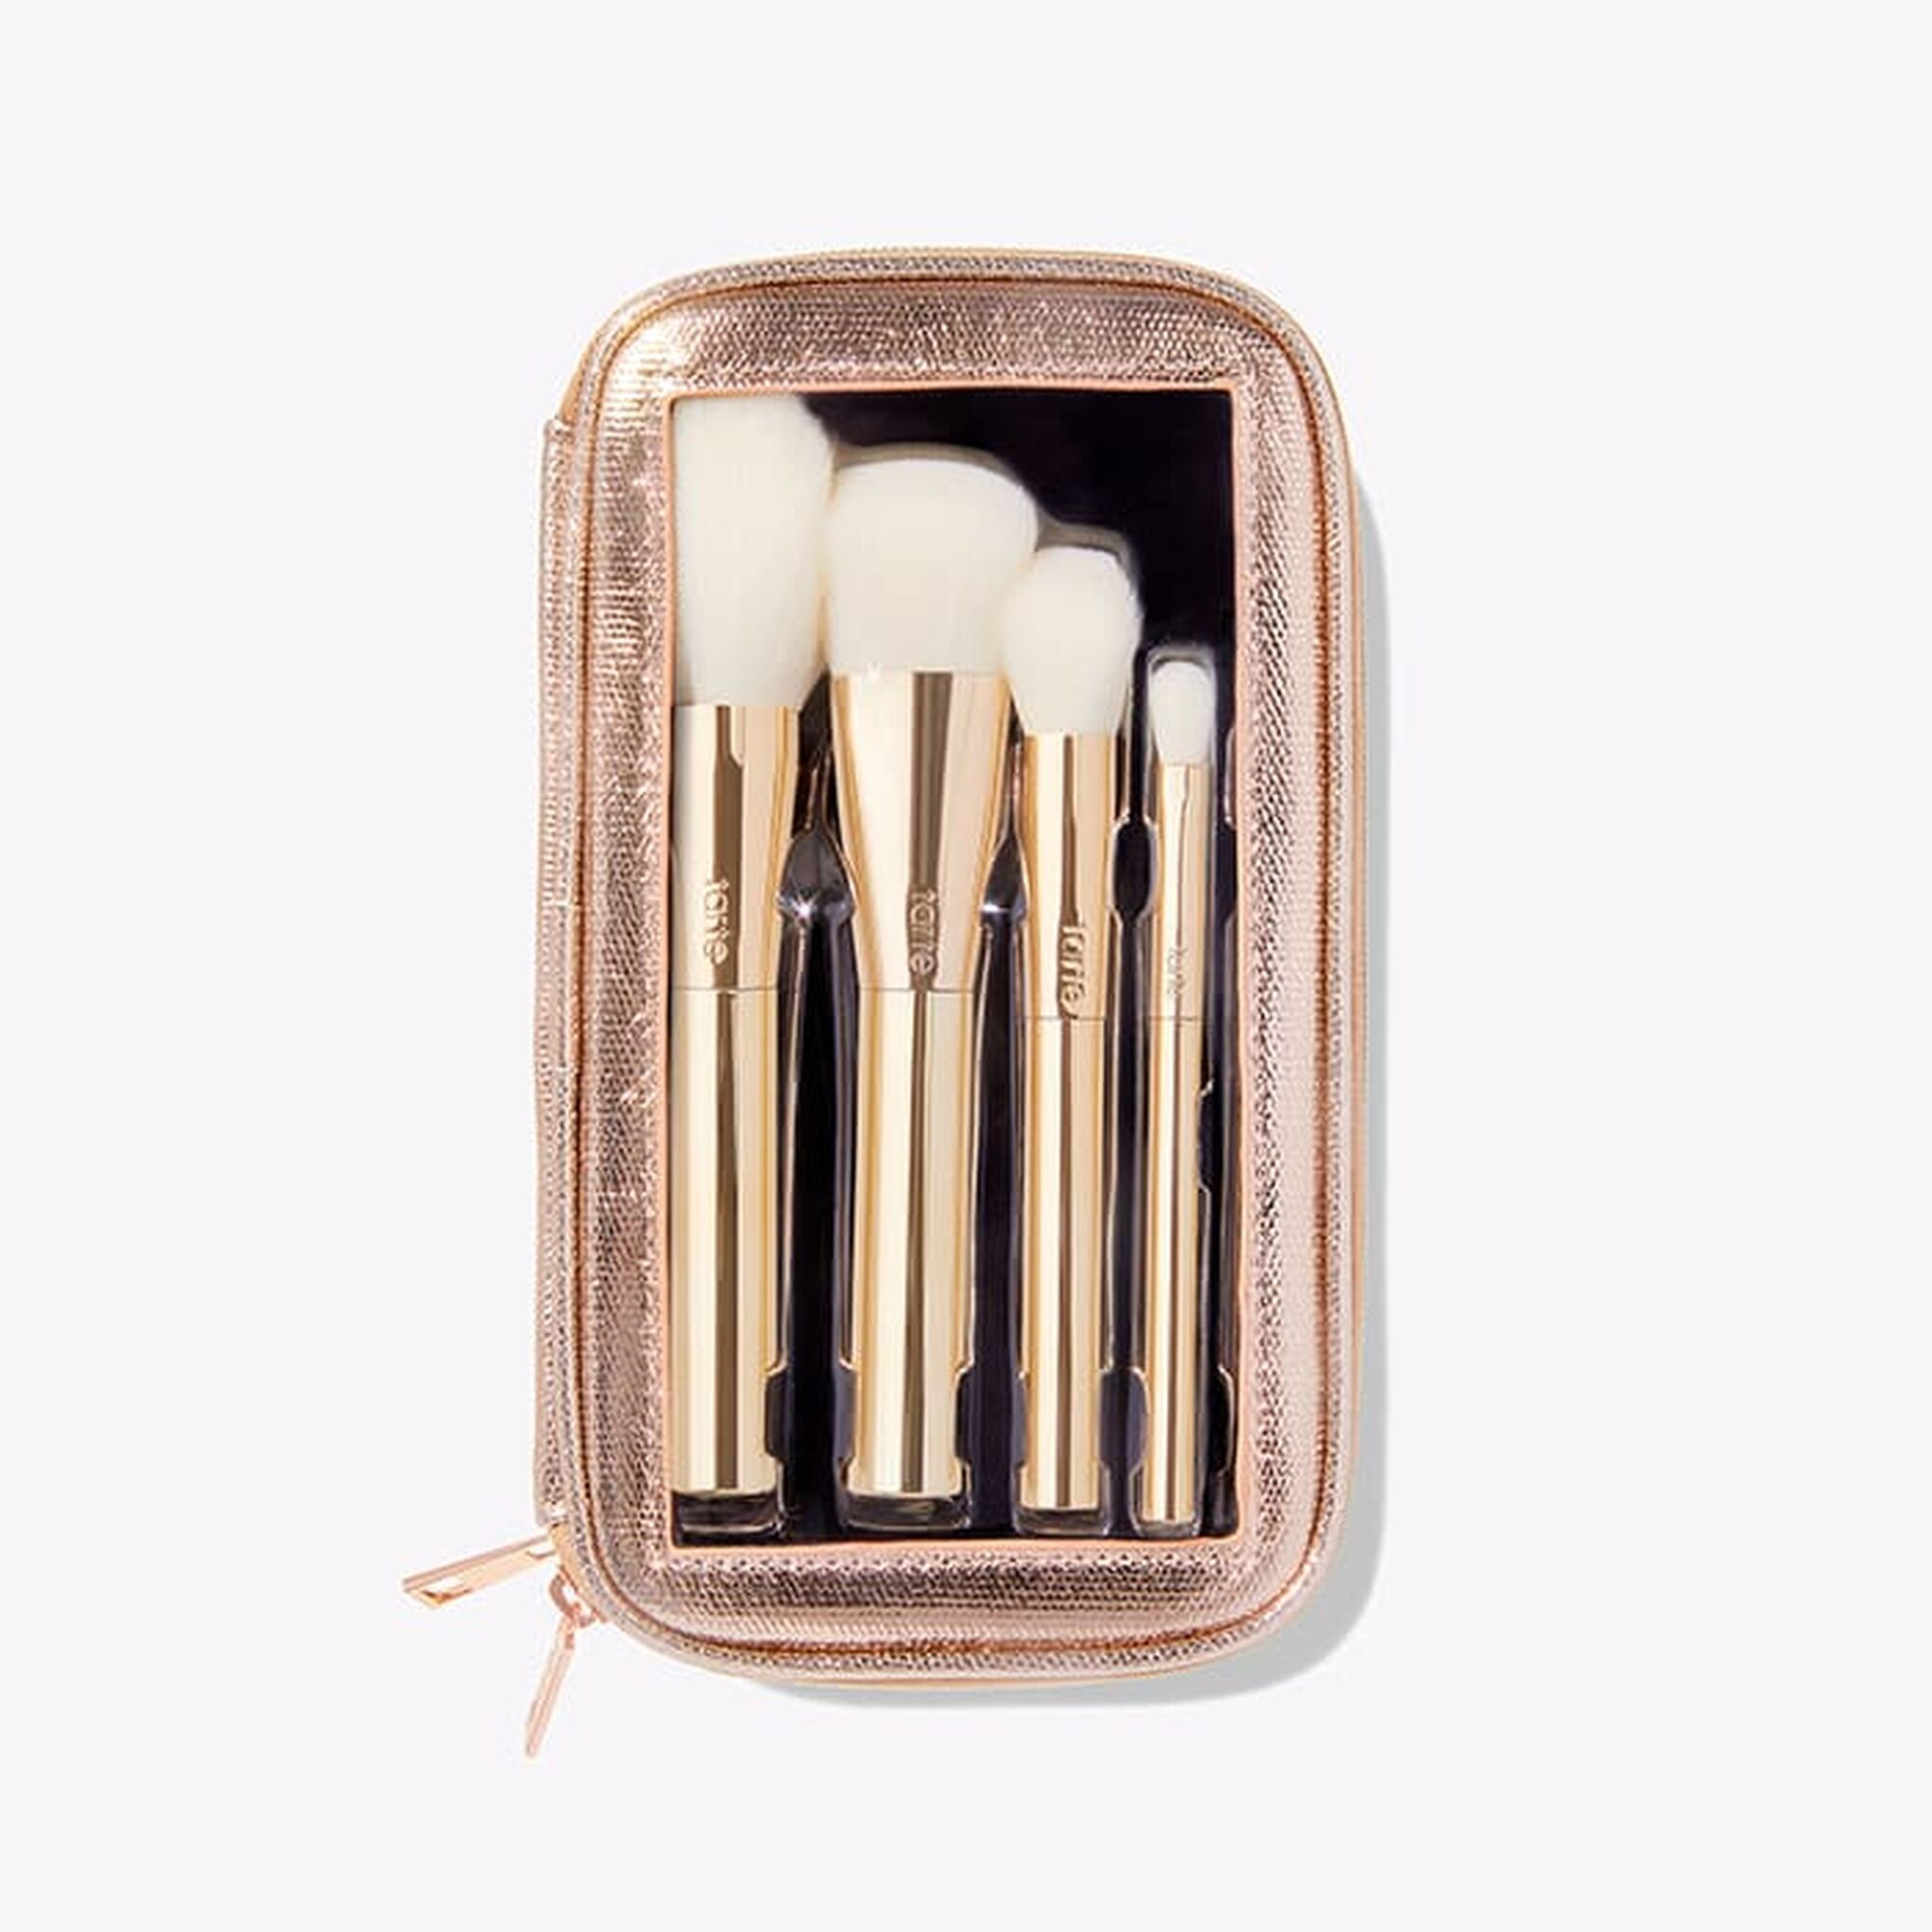 Gold dusters brush set How to wash makeup brushes